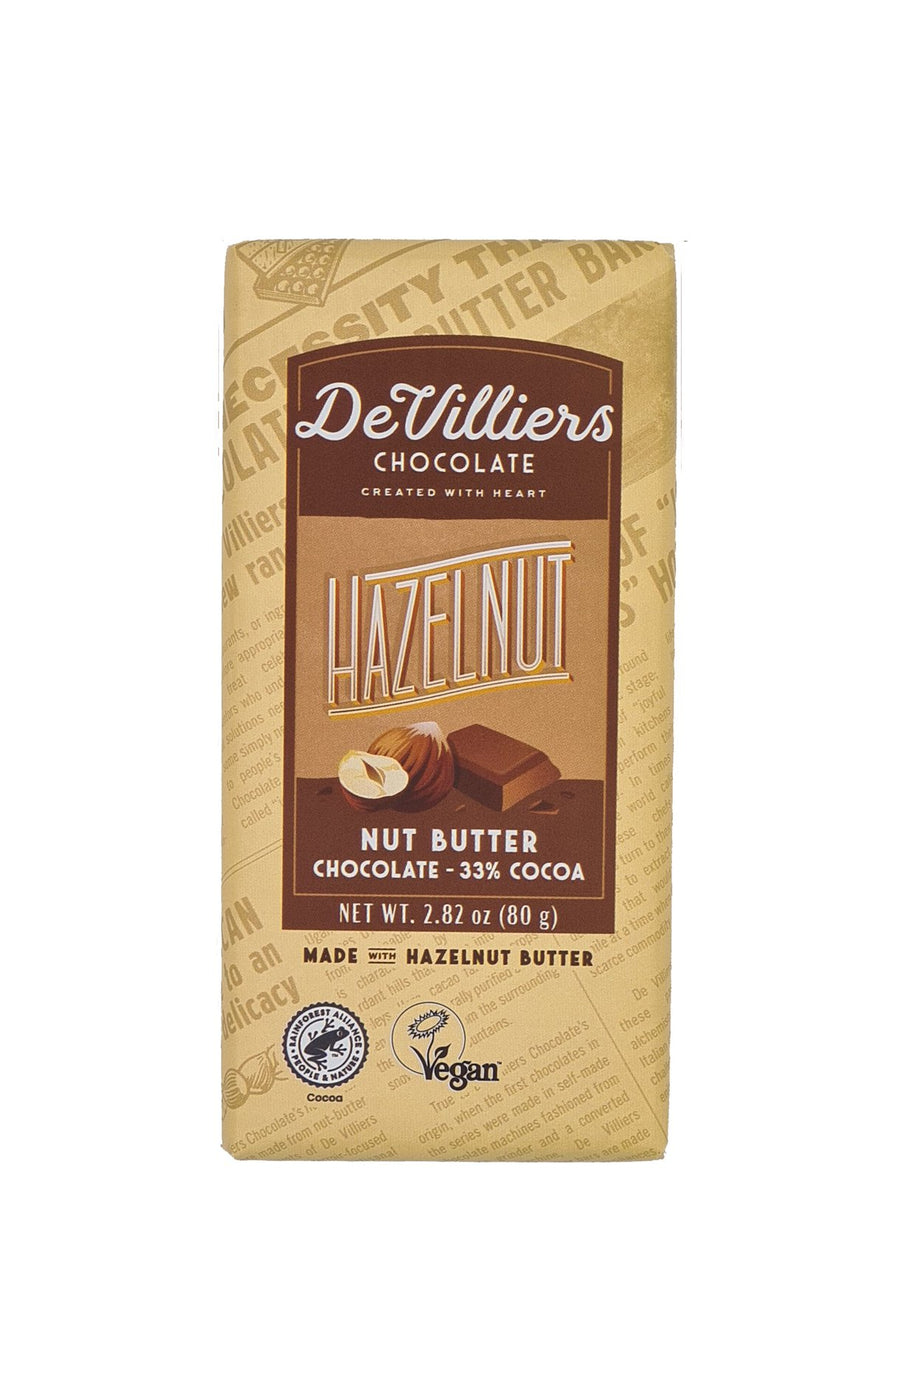 HAZELNUT NUT BUTTER CHOCOLATE BAR - de villiers chocolate us